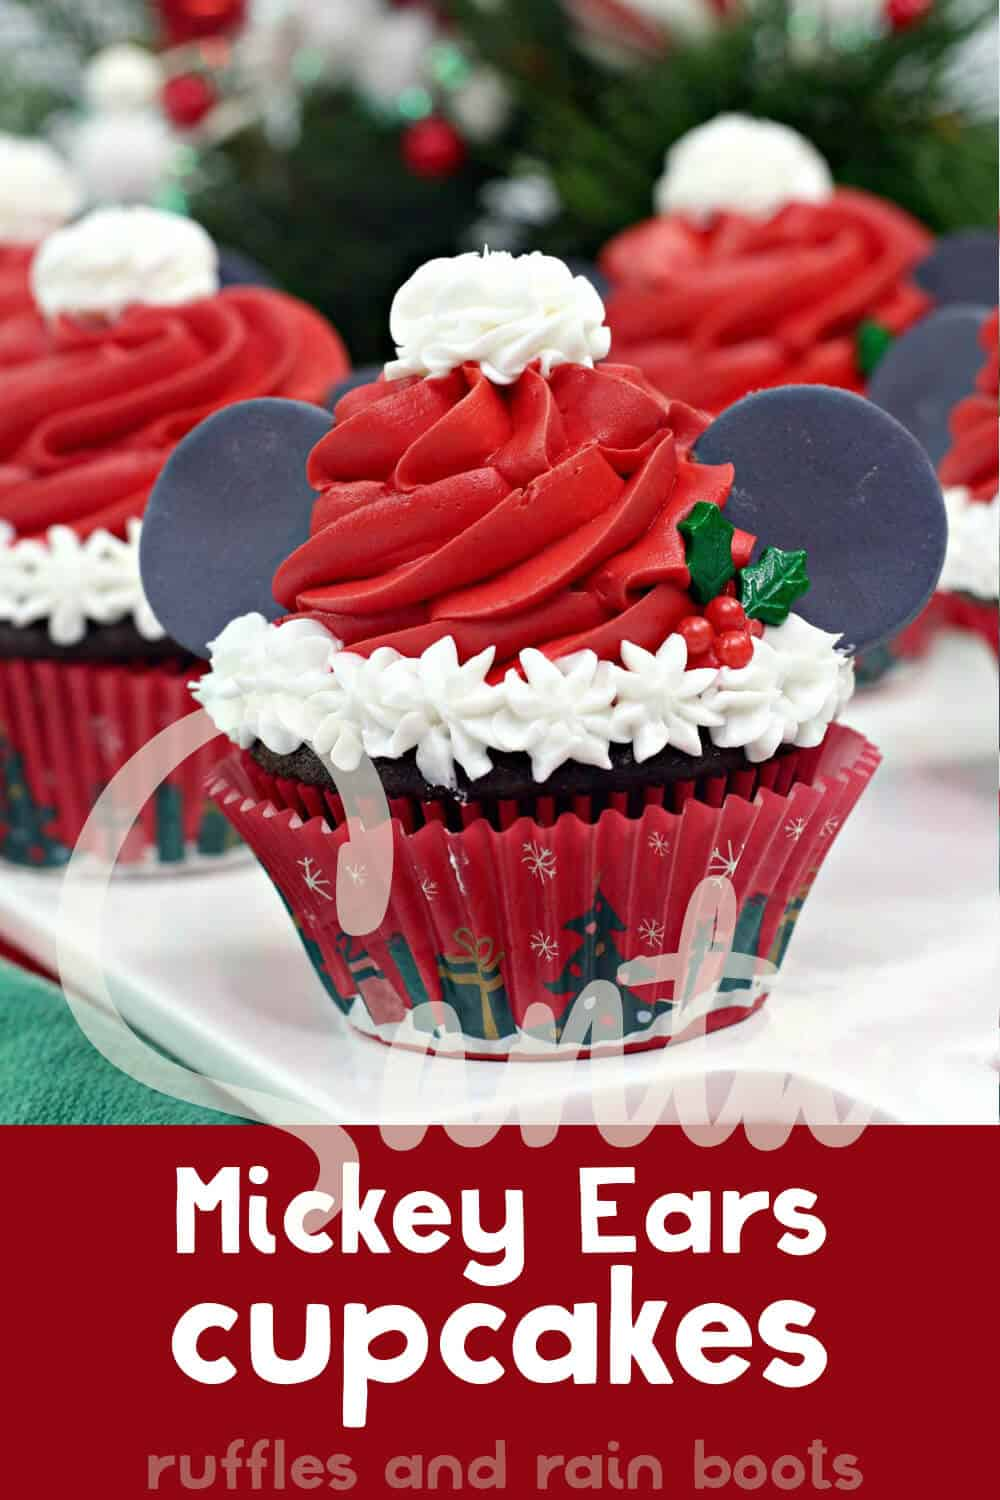 how to make santa mickey cupcakes with text which reads santa mickey ears cupcakes